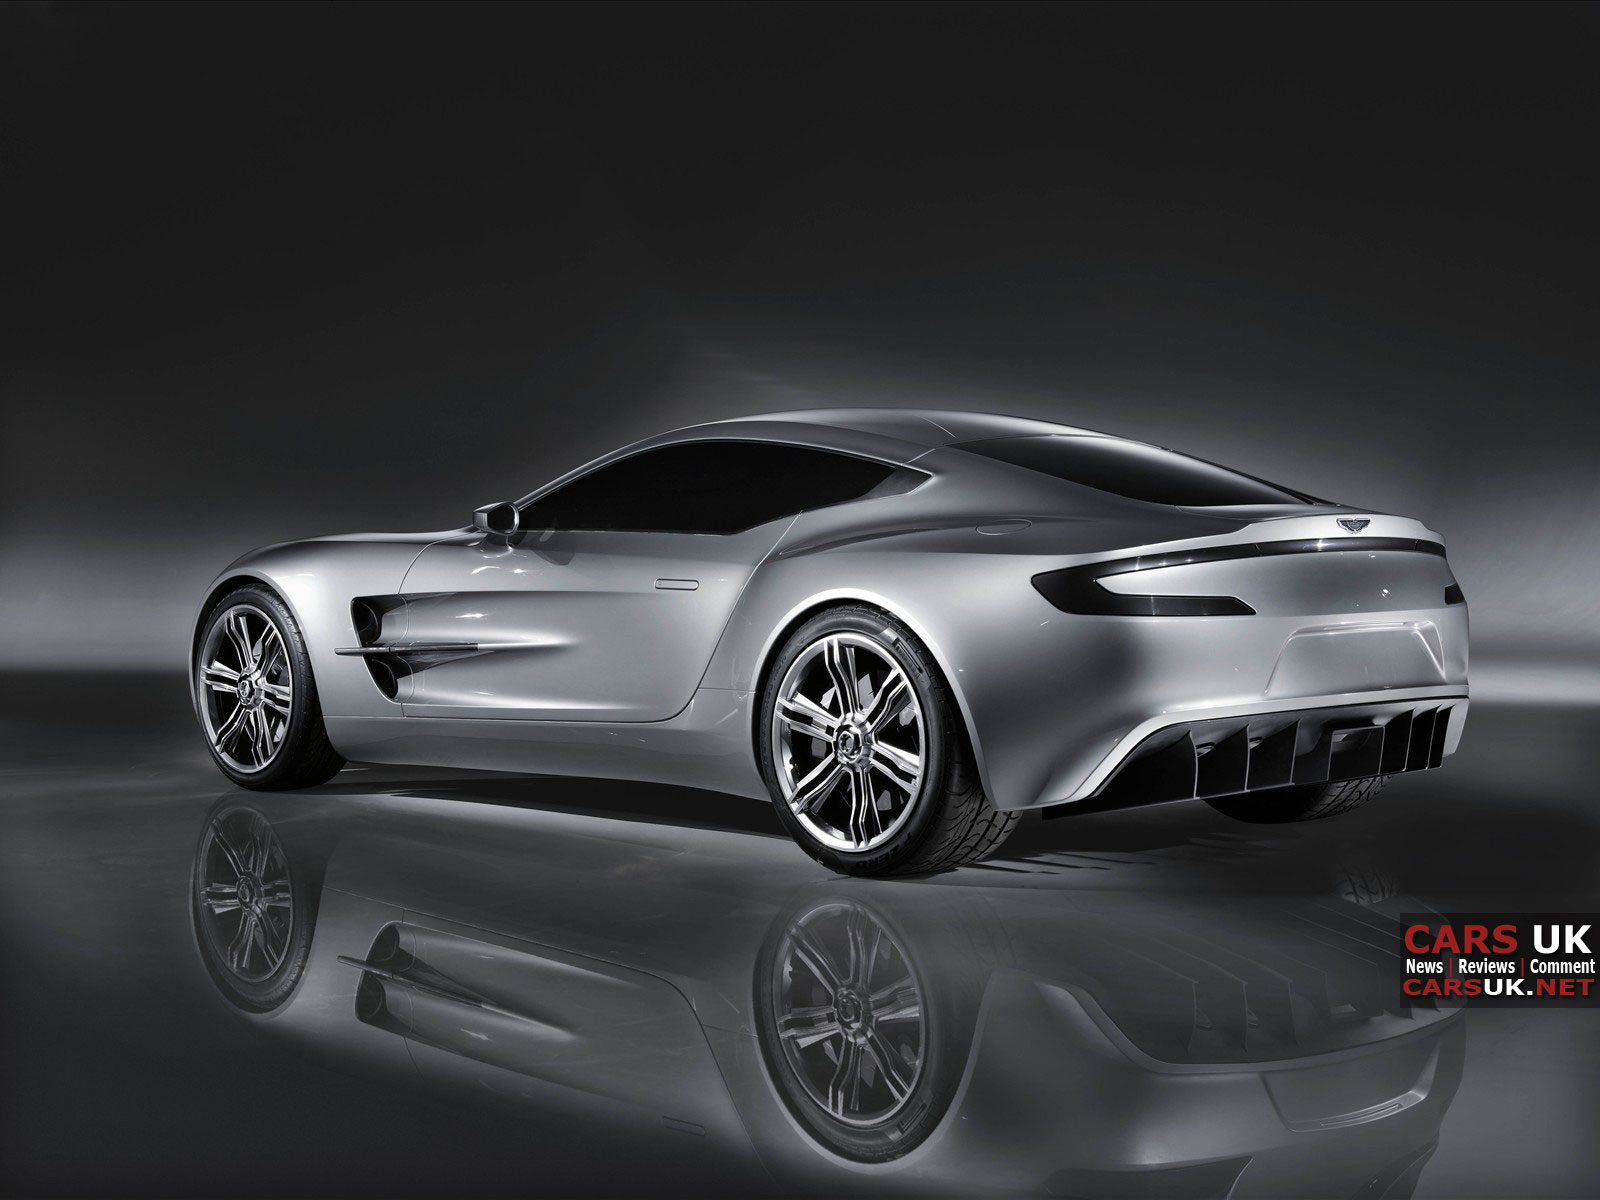 aston martin one 77 wallpaper hd 1600x1200